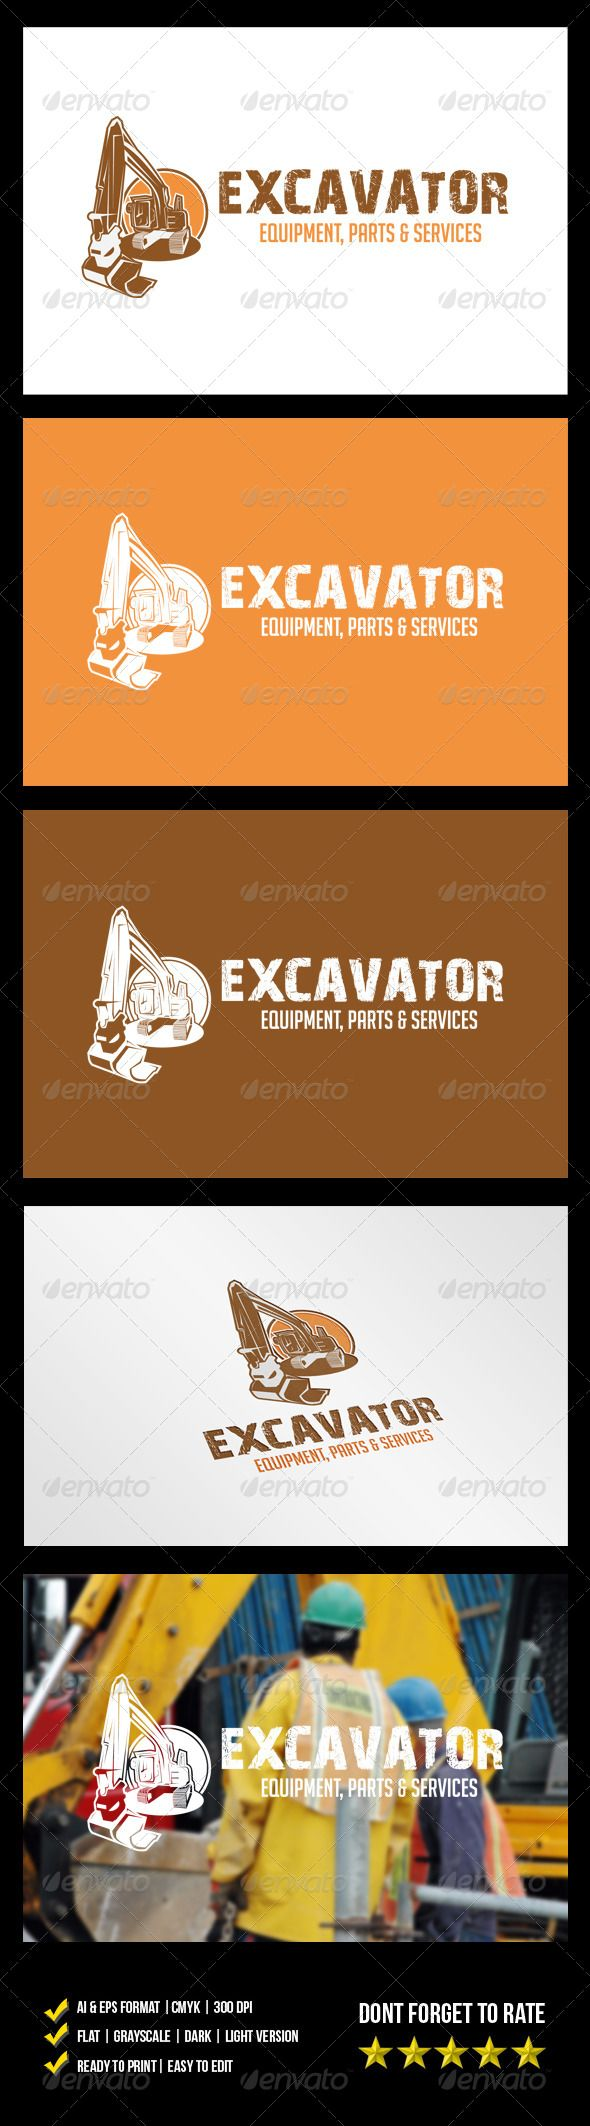 how to get your excavator licence